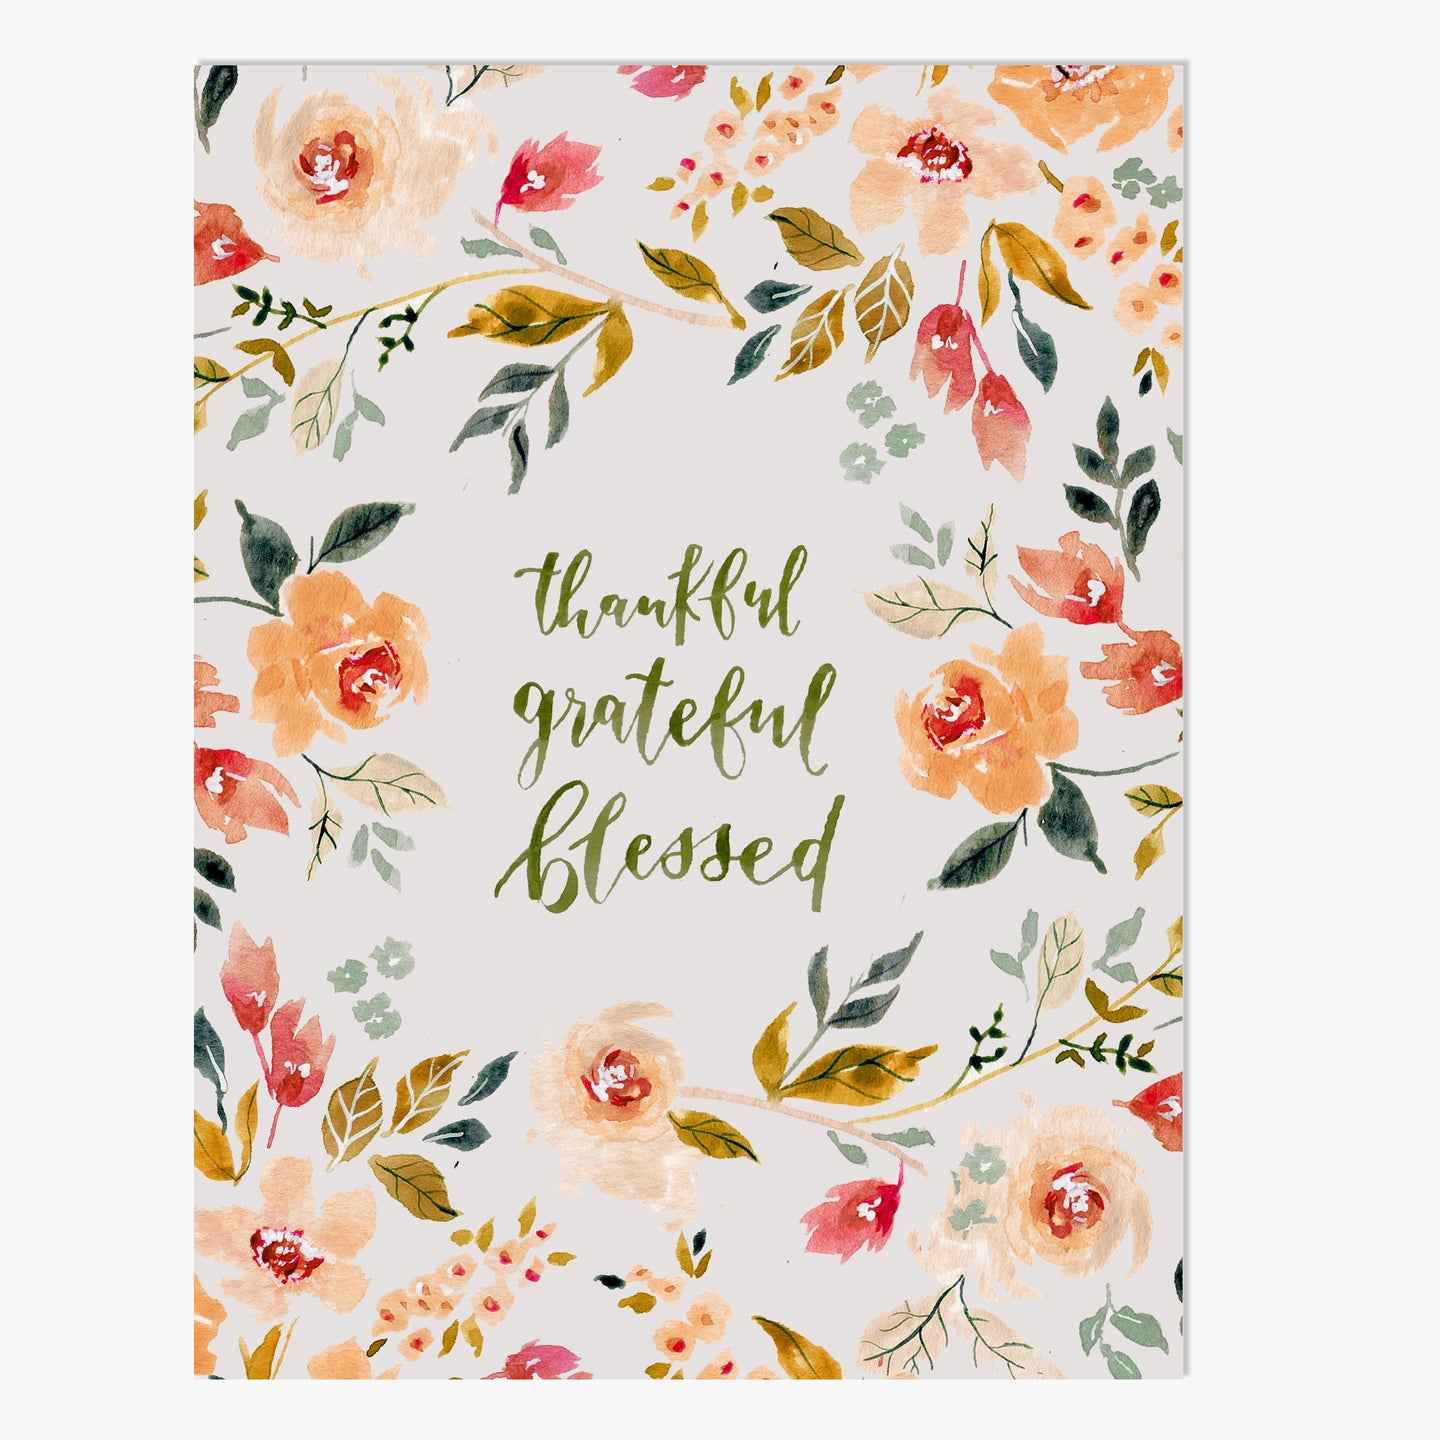 Fall Print | Thankful Grateful Blessed